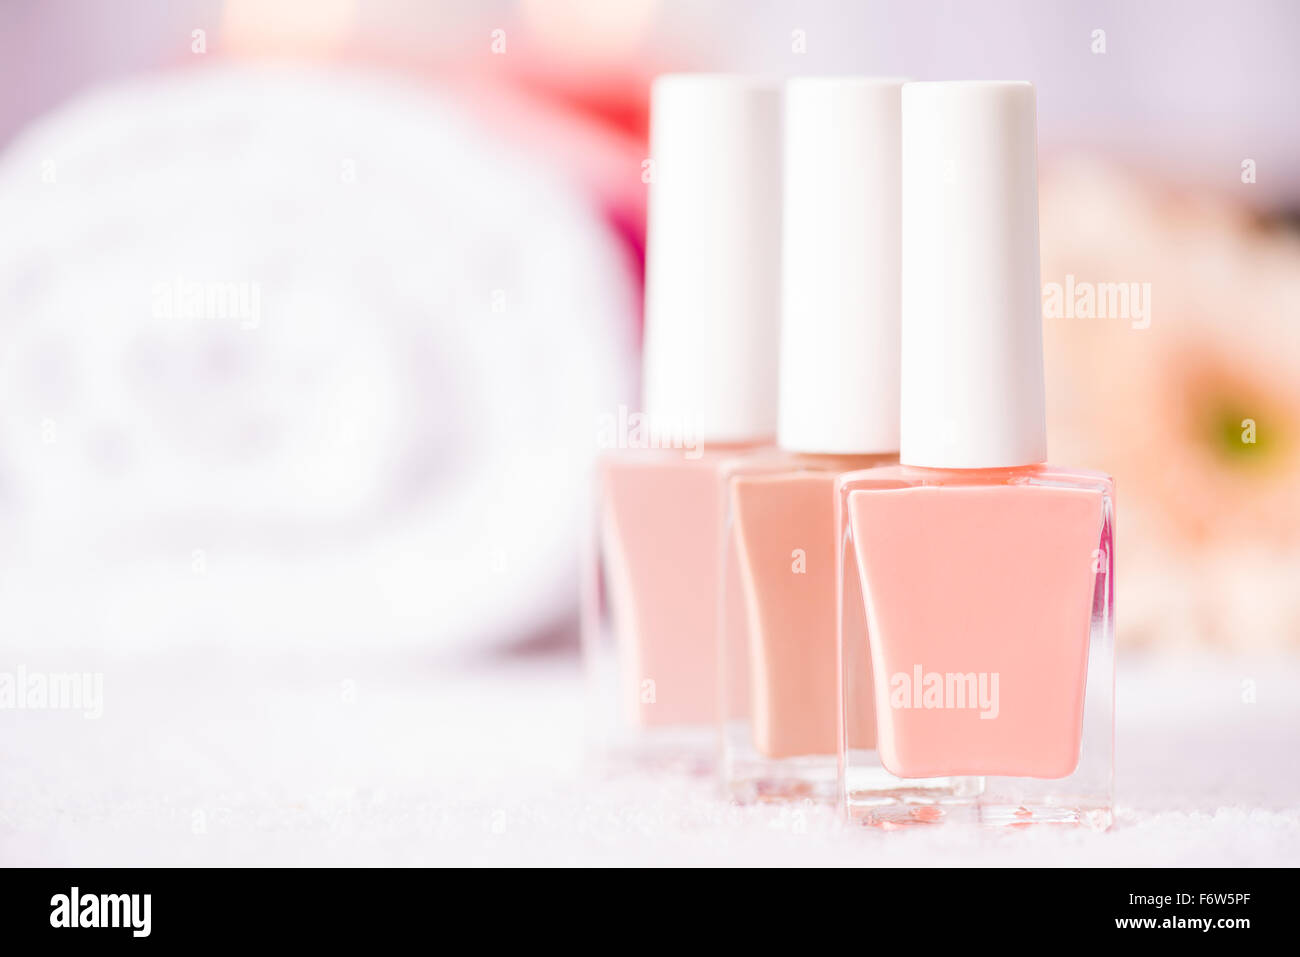 Nail Pusher Stock Photos & Nail Pusher Stock Images - Alamy